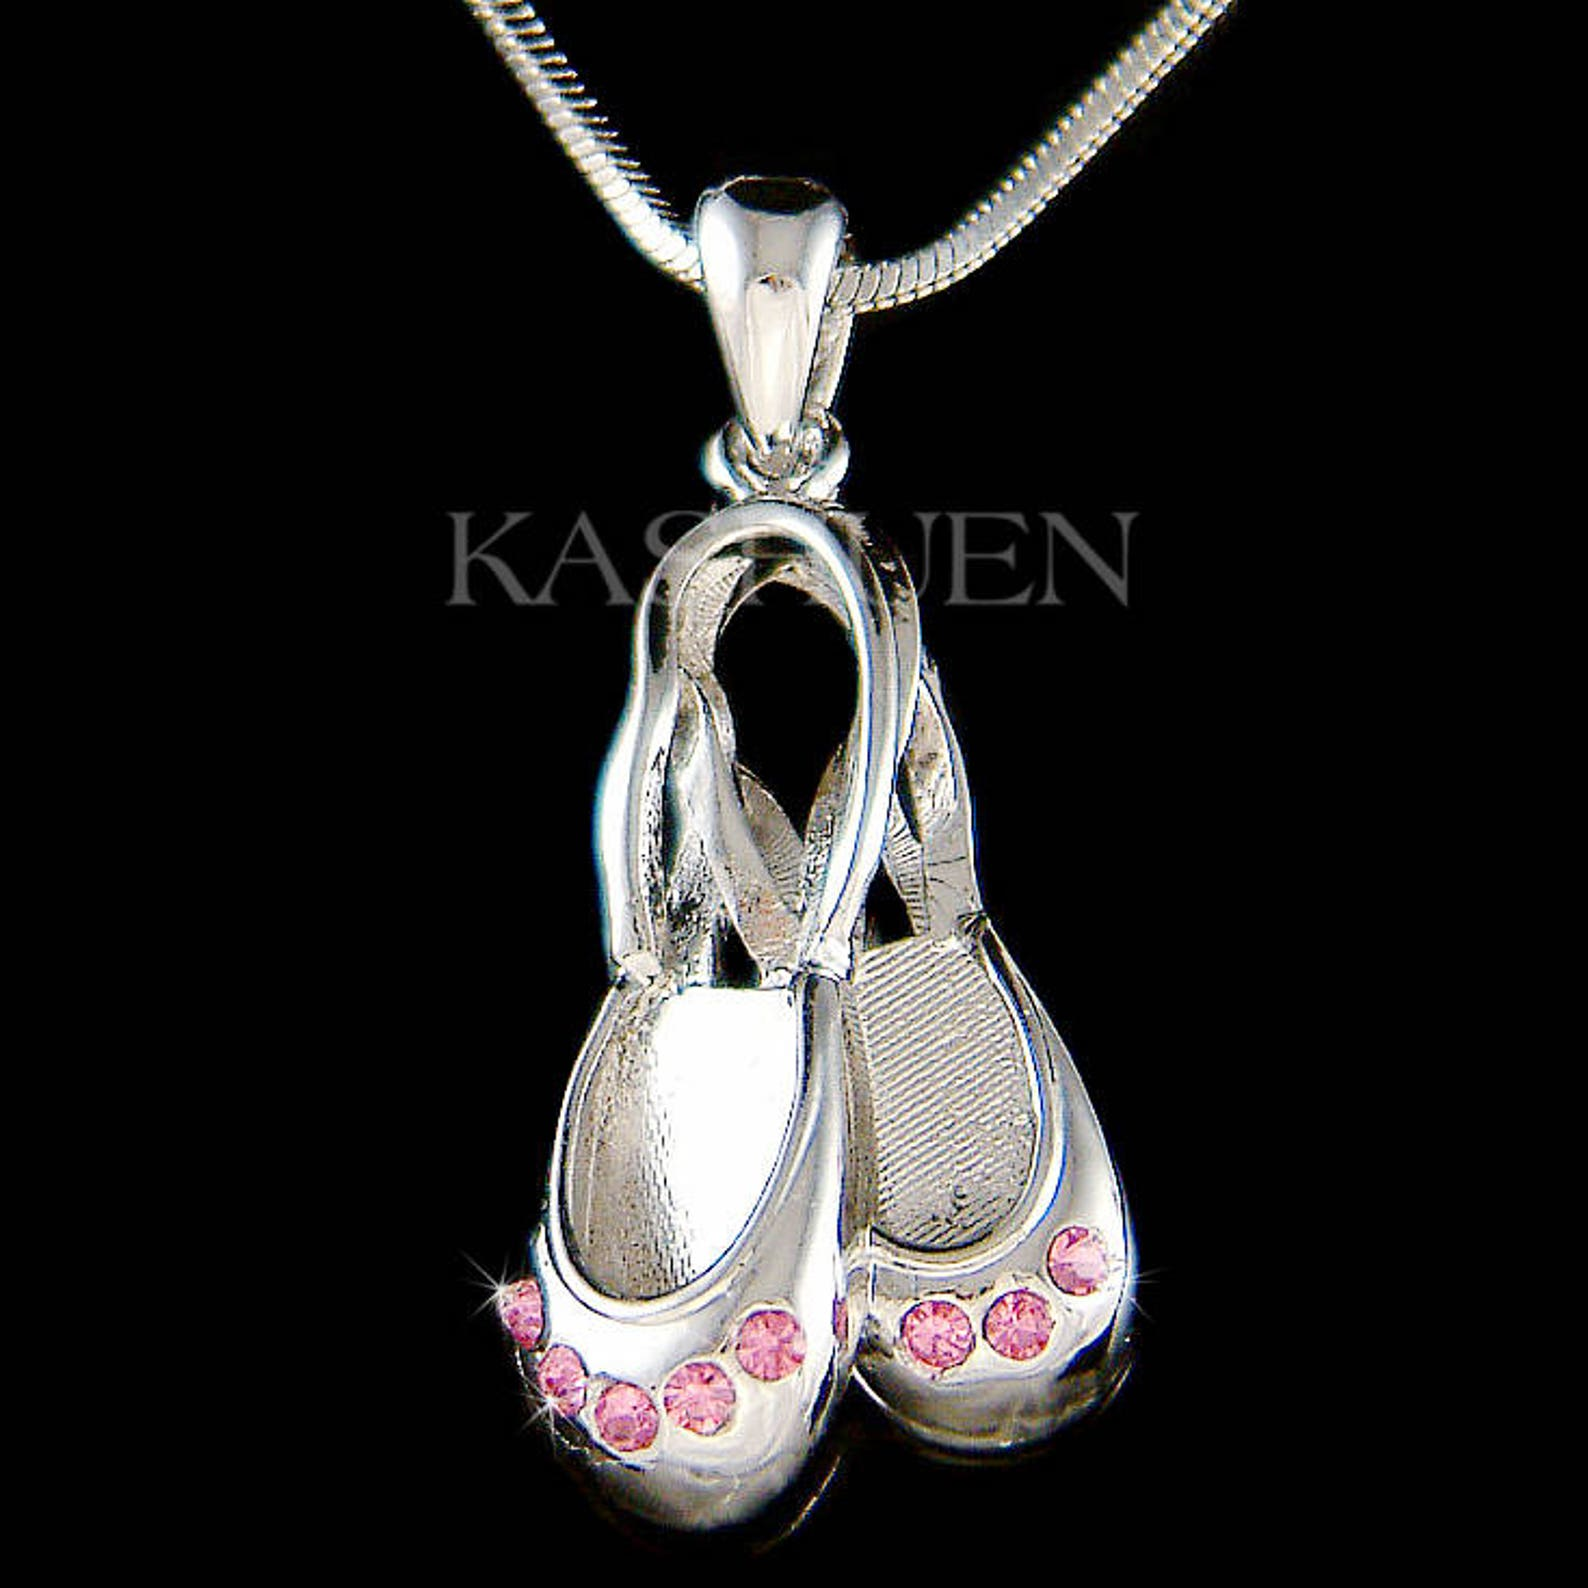 swarovski crystal pink ballerina slippers ballet dance shoes pendant chain necklace jewelry best friend teacher student christma